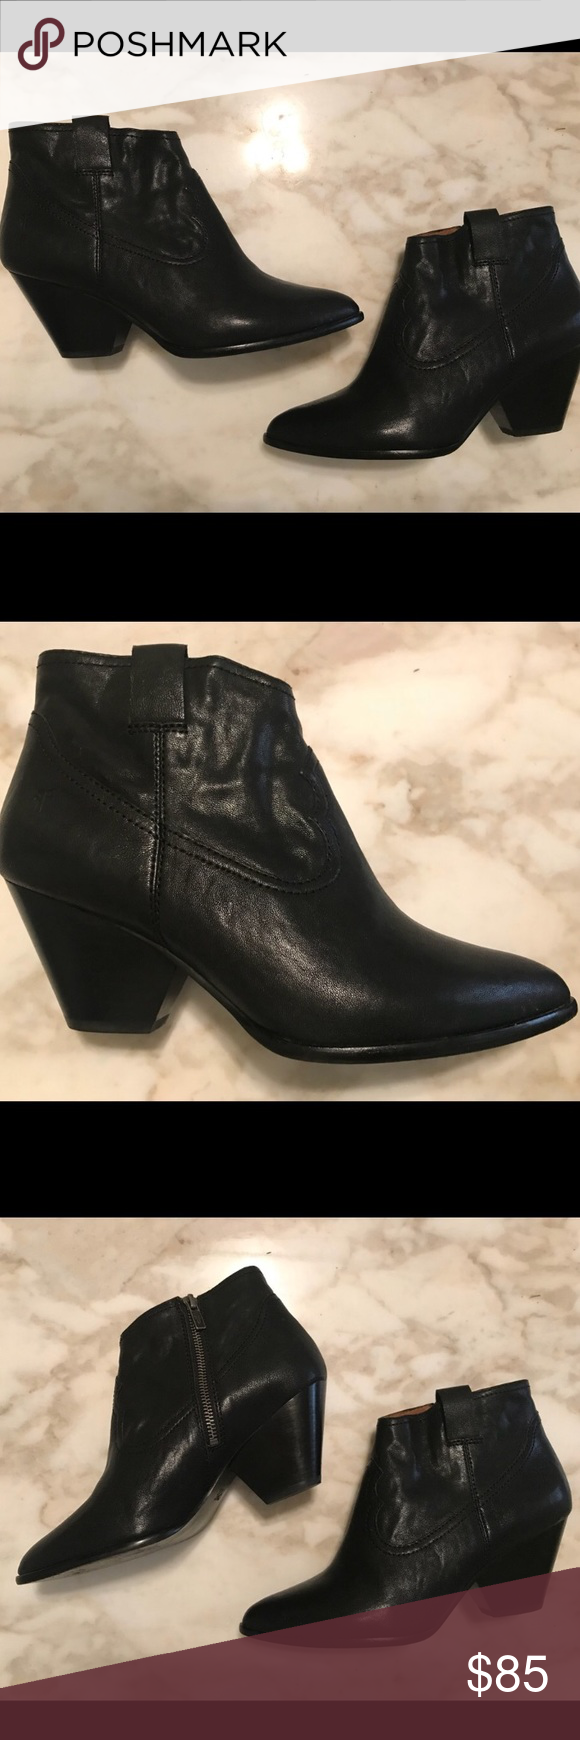 2f36c34d19b Frye Reina black booties Black leather booties/ankle boots reposh ...